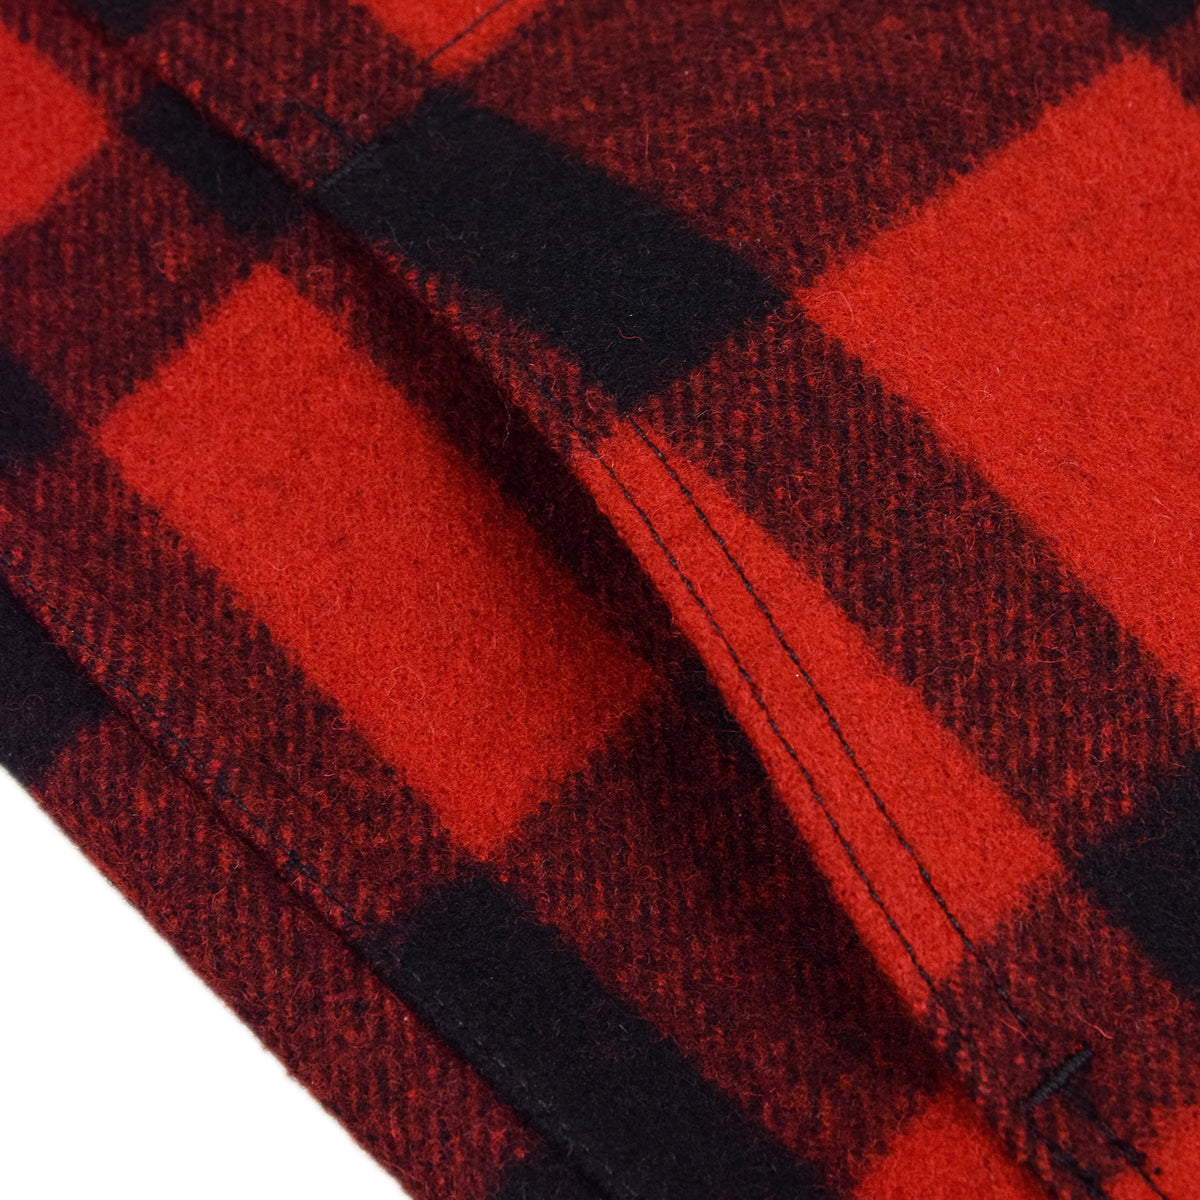 Filson Mackinaw Wool Vest Red Black Left Hand Pocket